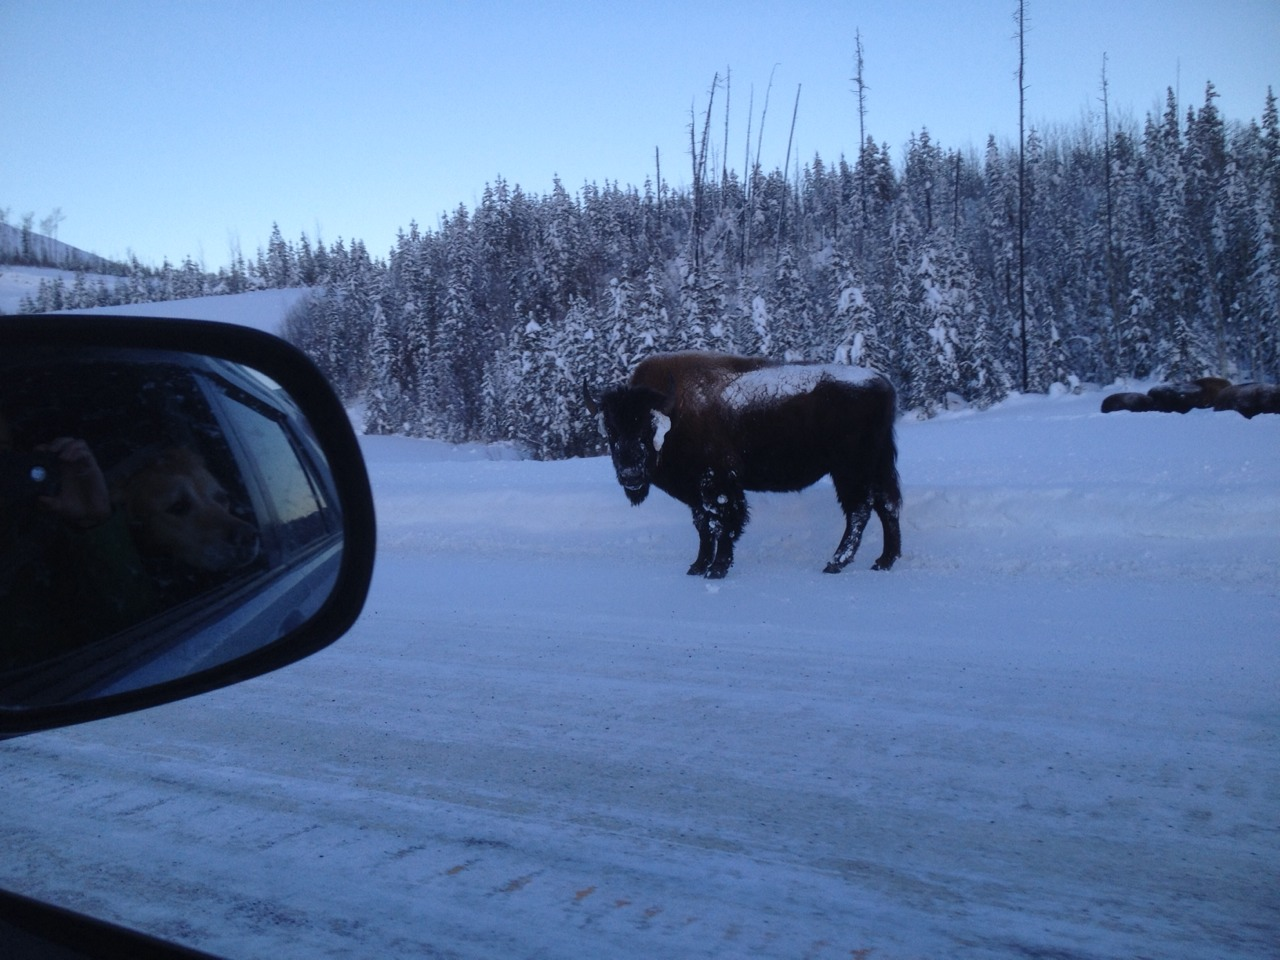 Kilometre 771 - some bison on the road